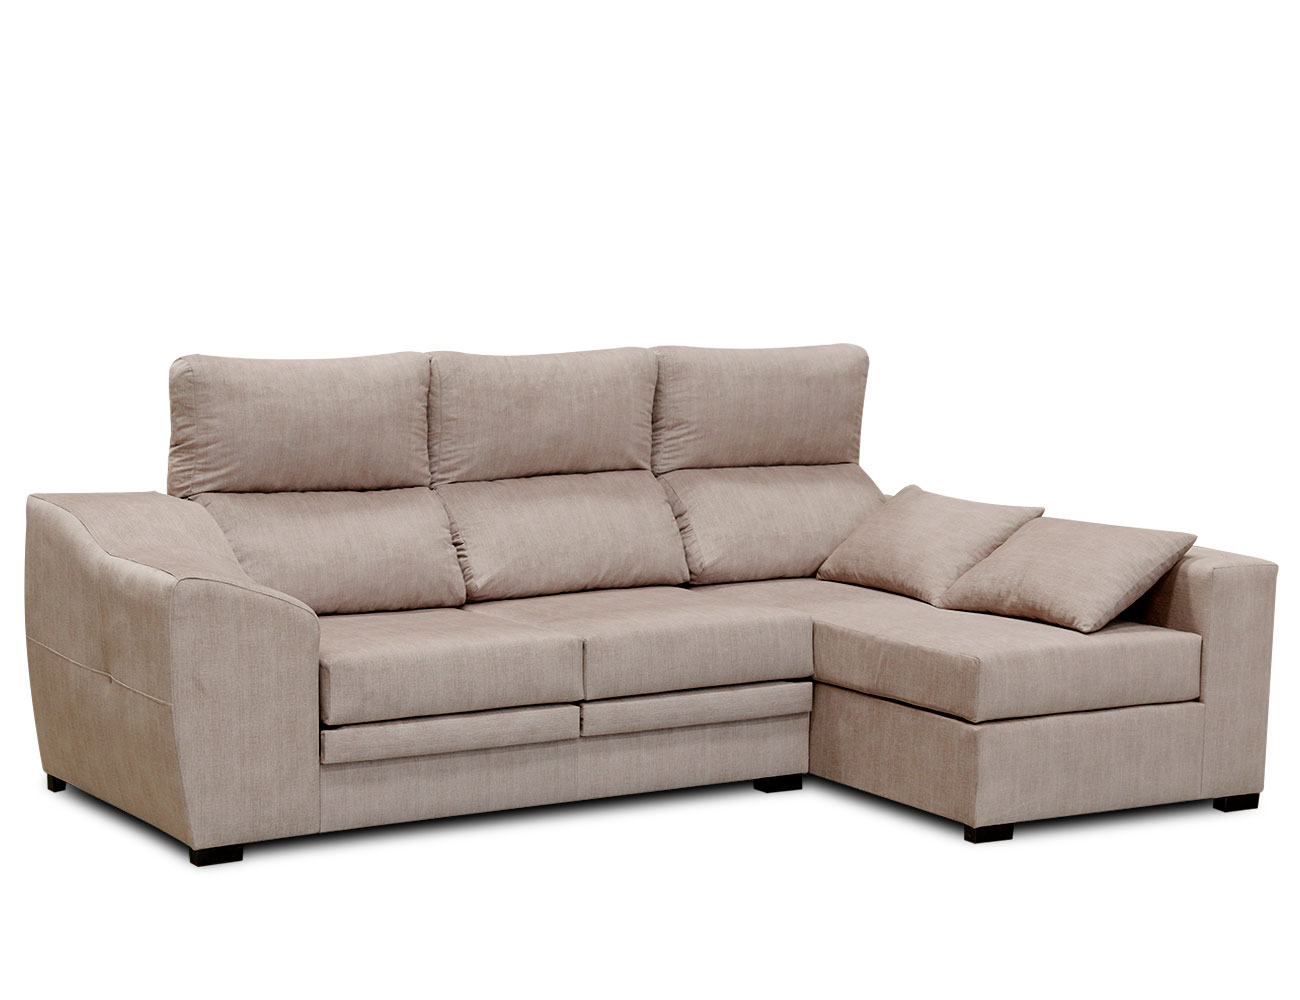 Sofa chaiselongue moderno cojin beig 2